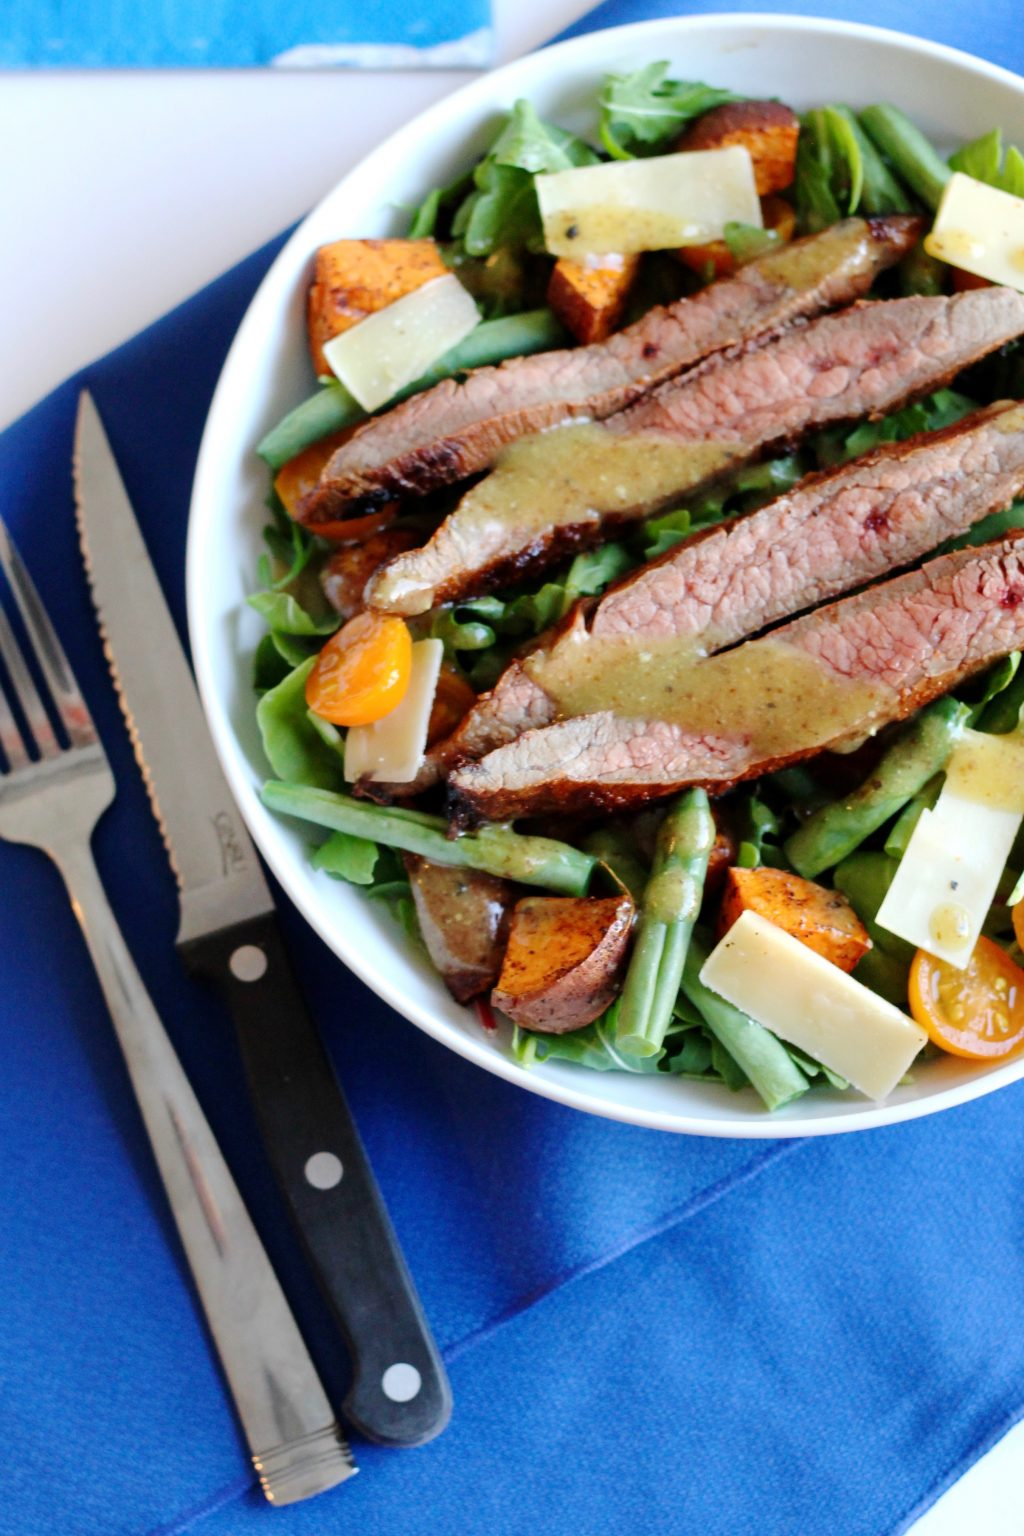 Skirt Steak Salad with Roasted Sweet Potatoes, Tomatoes, Green Beans, and Shaved Parmesan Recipe ll A hearty and gluten-free salad recipe! ll www.littlechefbigappetite.com